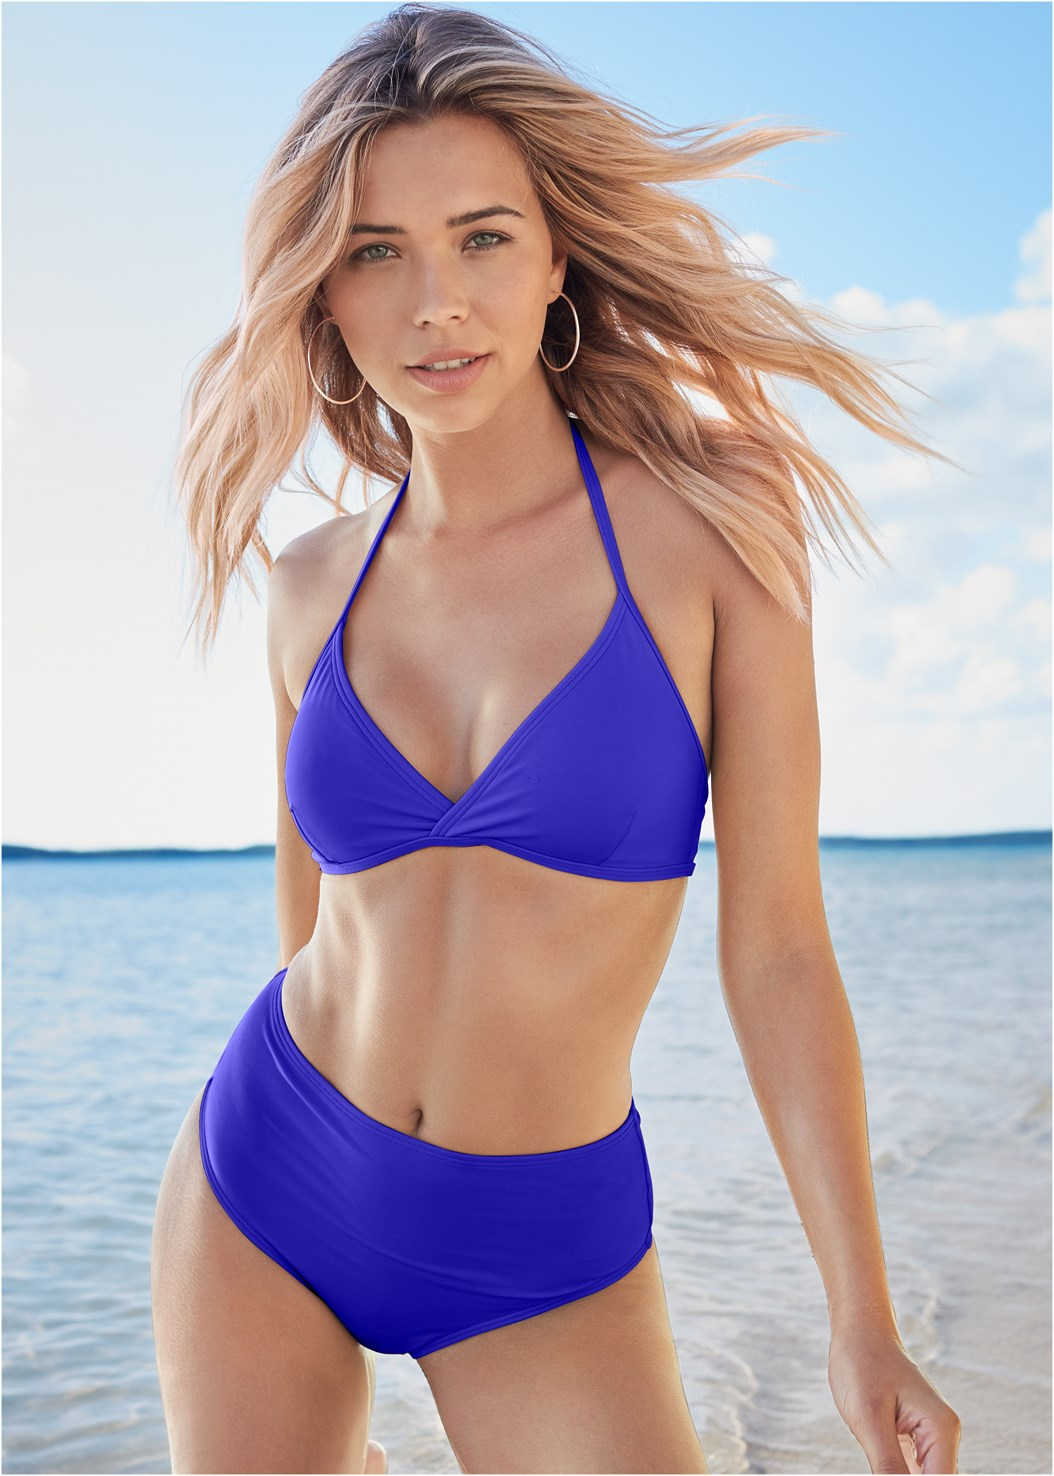 All Day Halter Top,All Day High Rise Bottom,Mid Rise Strappy Bottom,Full Coverage Mid Rise Hipster Bikini Bottom,Side Slit Cover-Up Dress